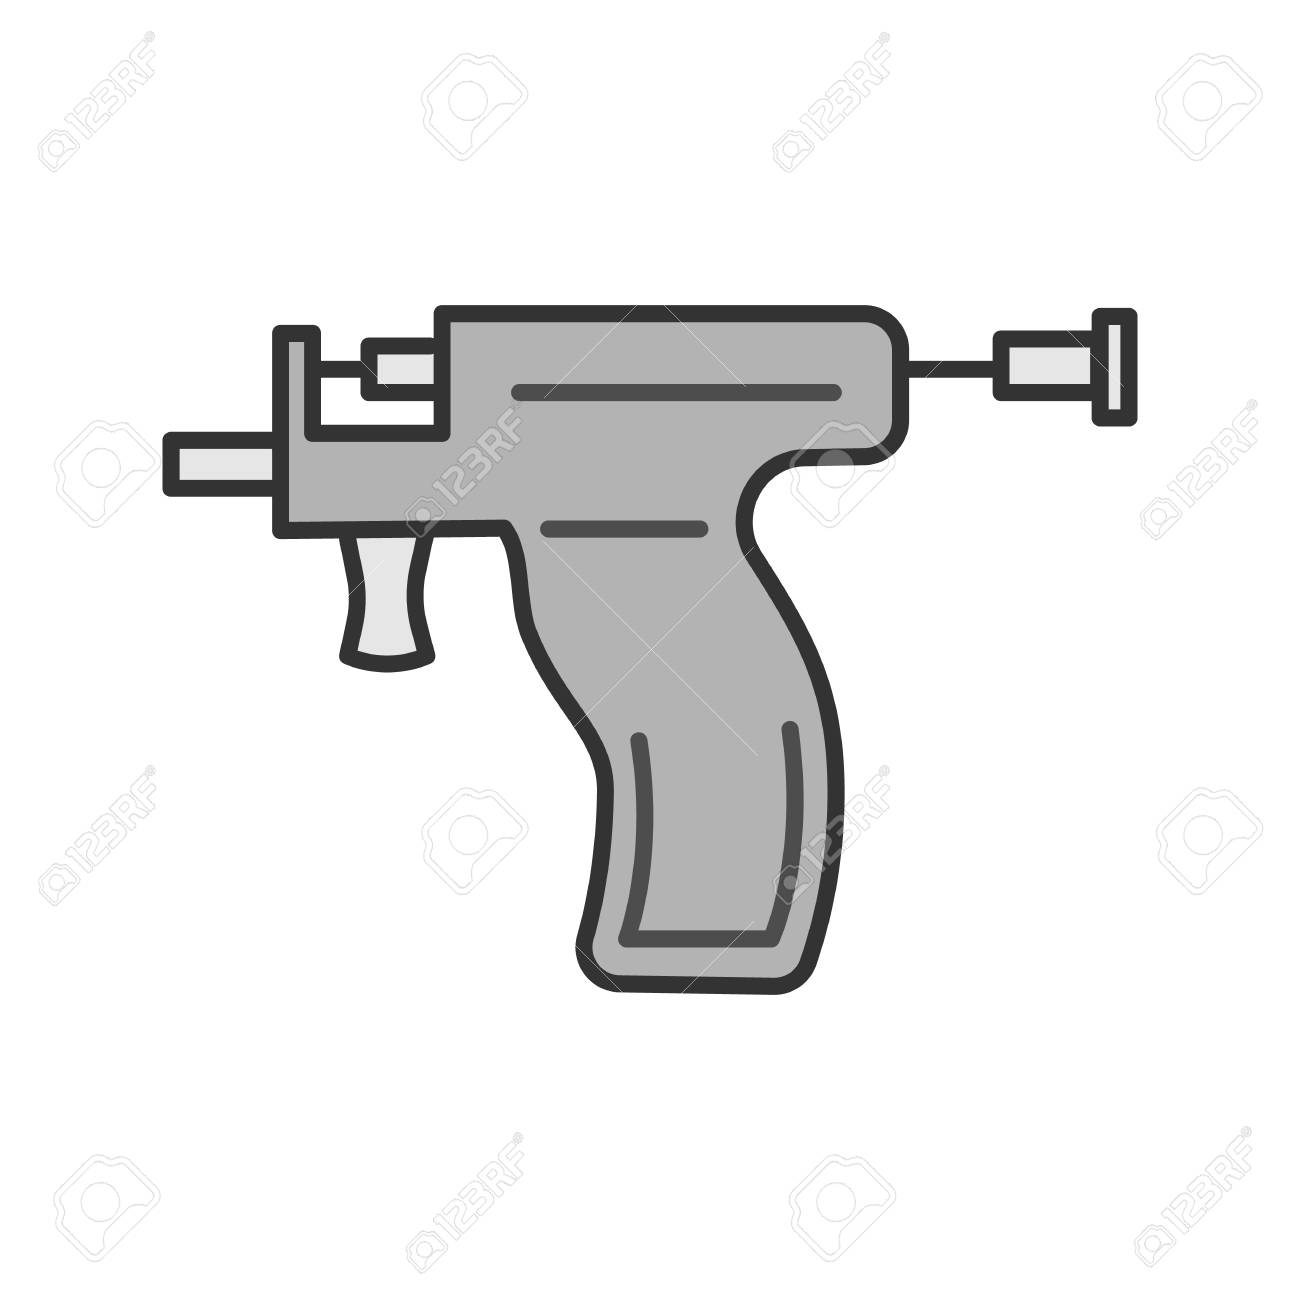 Piercing Gun Color Icon  Ear Piercing Instrument  Isolated Vector